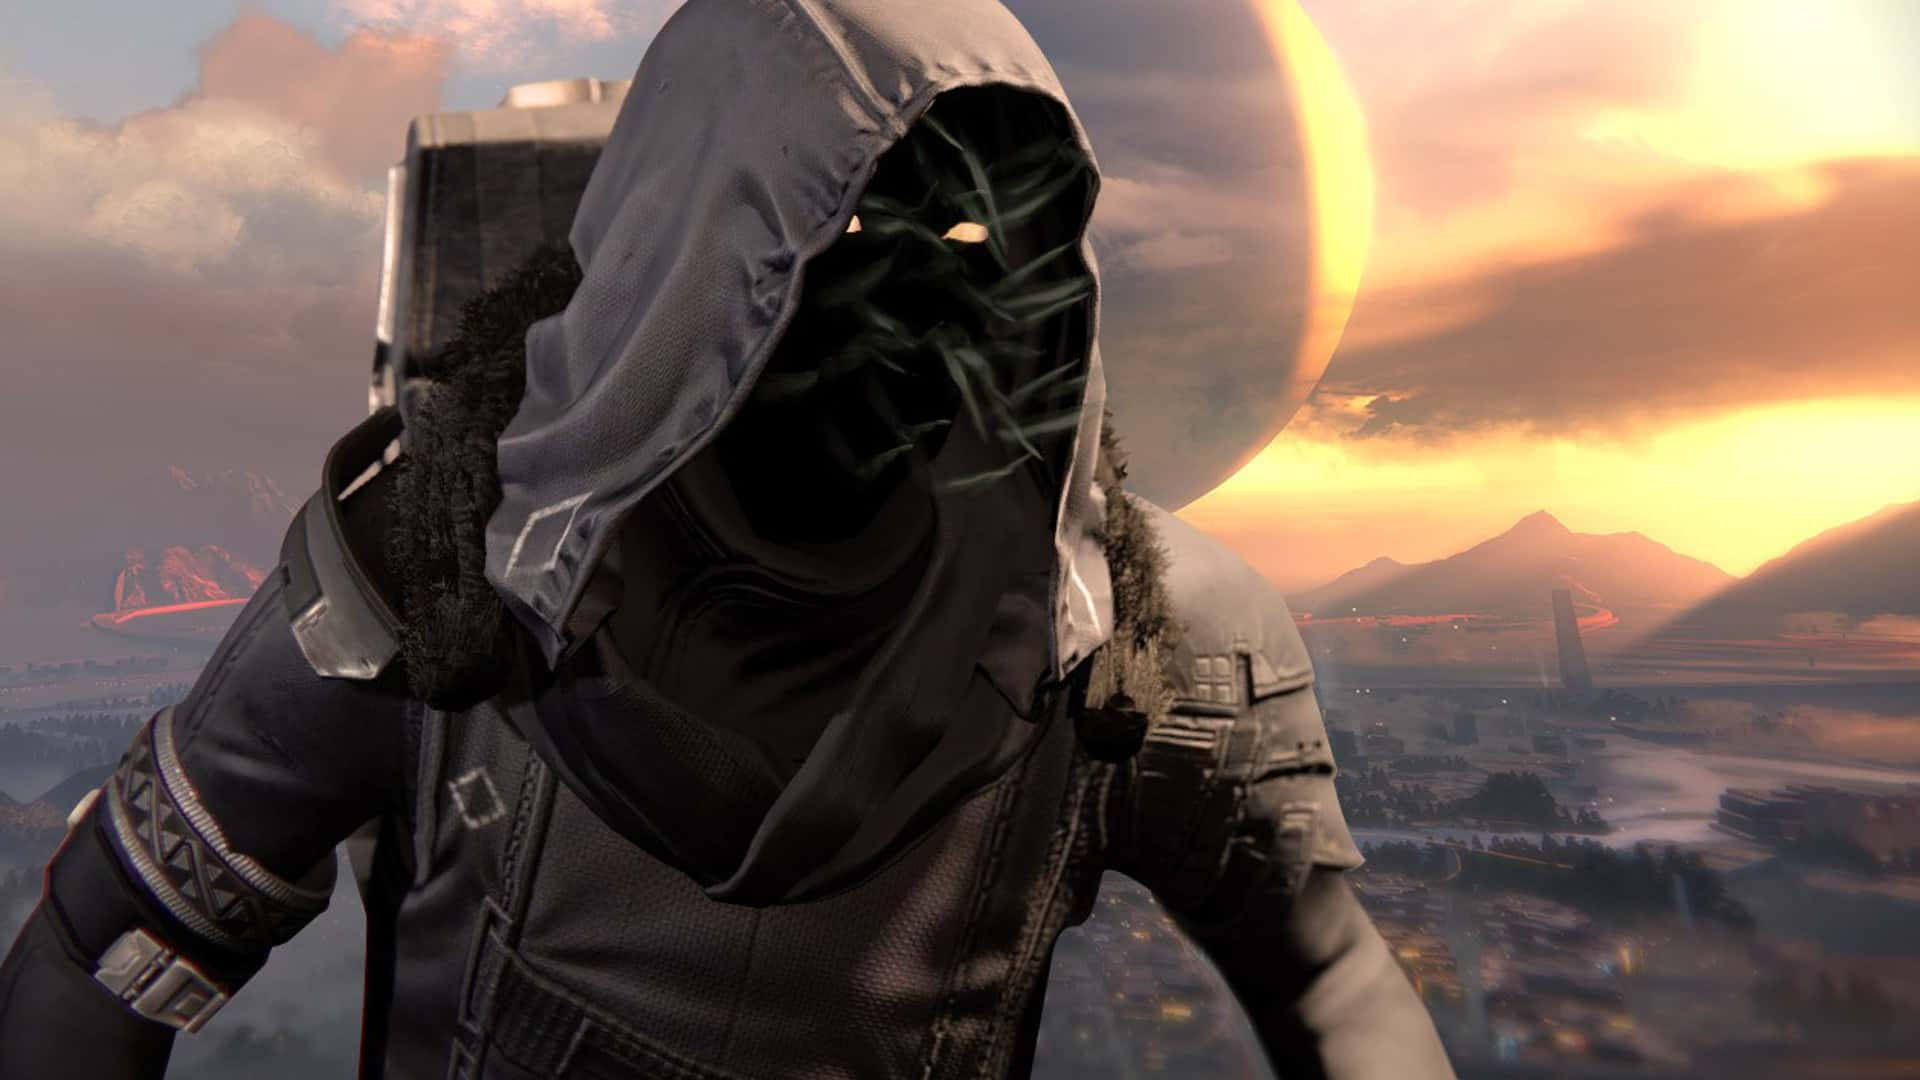 destiny 2 where is xur, Destiny 2 Where Is Xur and Items List July 3, MP1st, MP1st